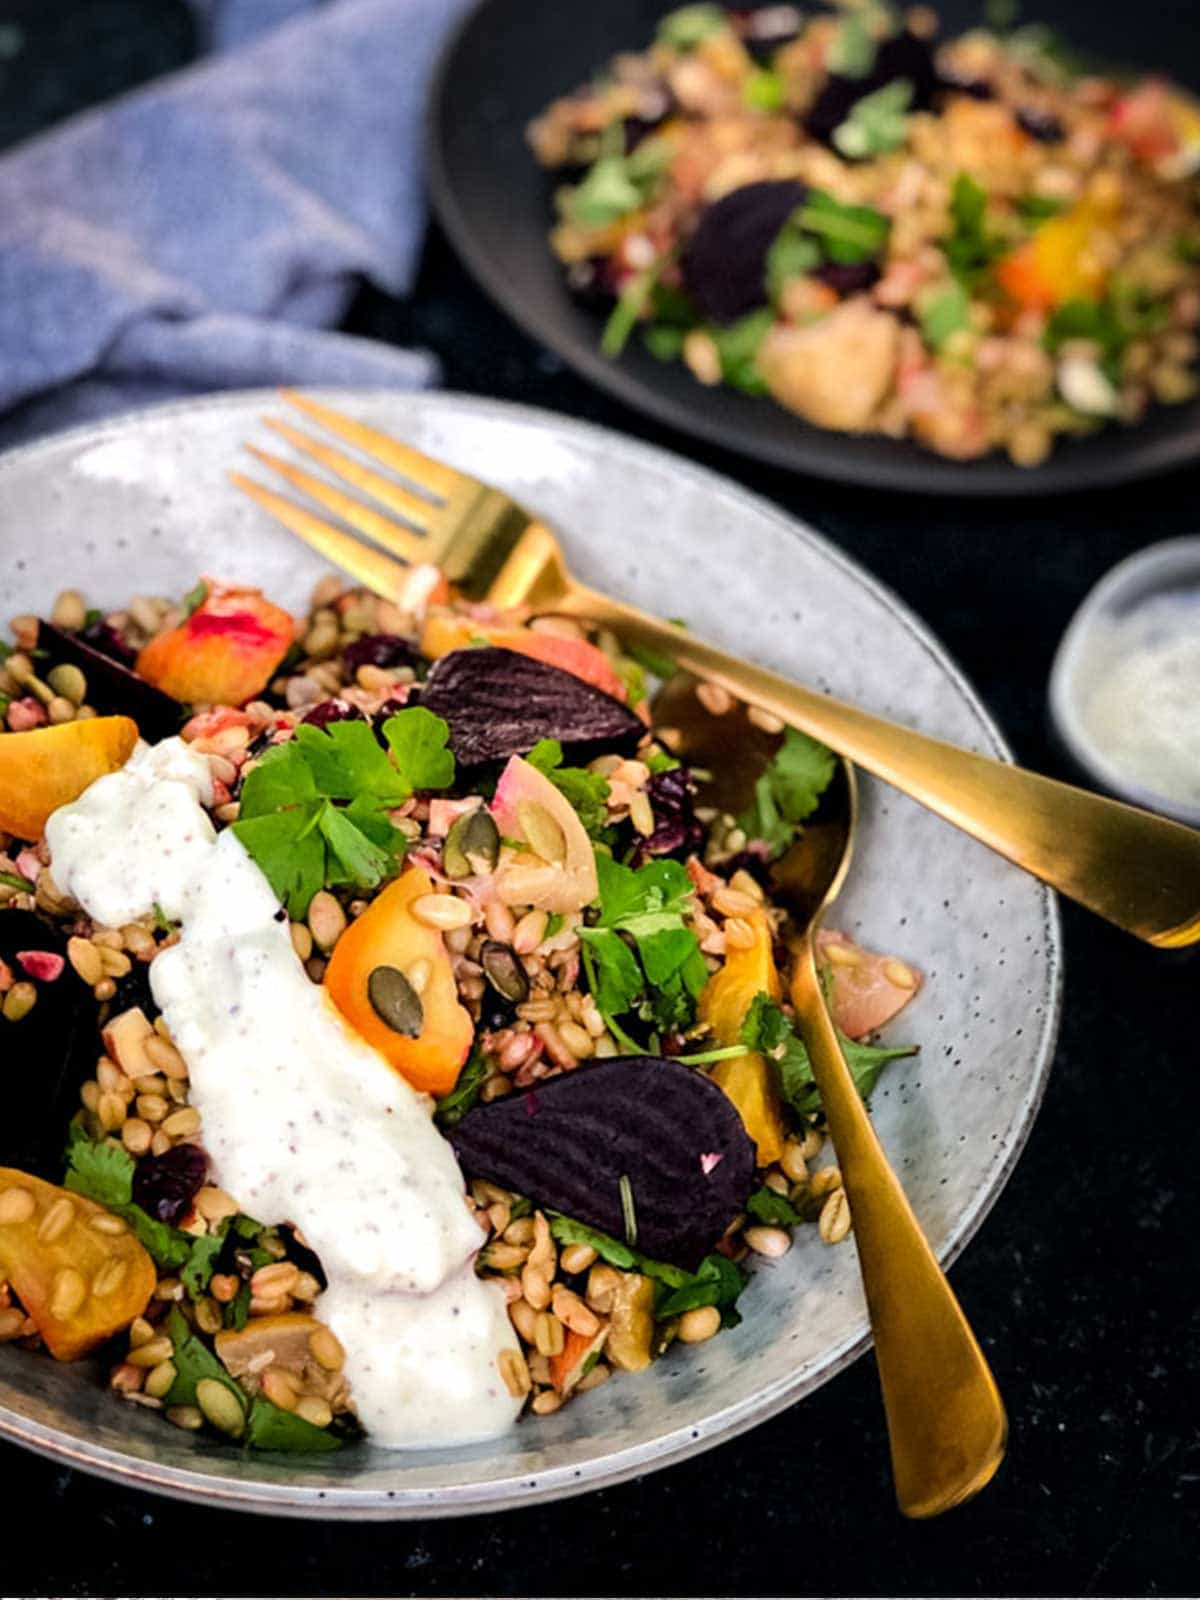 Bowl of salad with grains, beets and tomatoes and gold forks on bowl.  Behind is more salad and bowl of dressing.